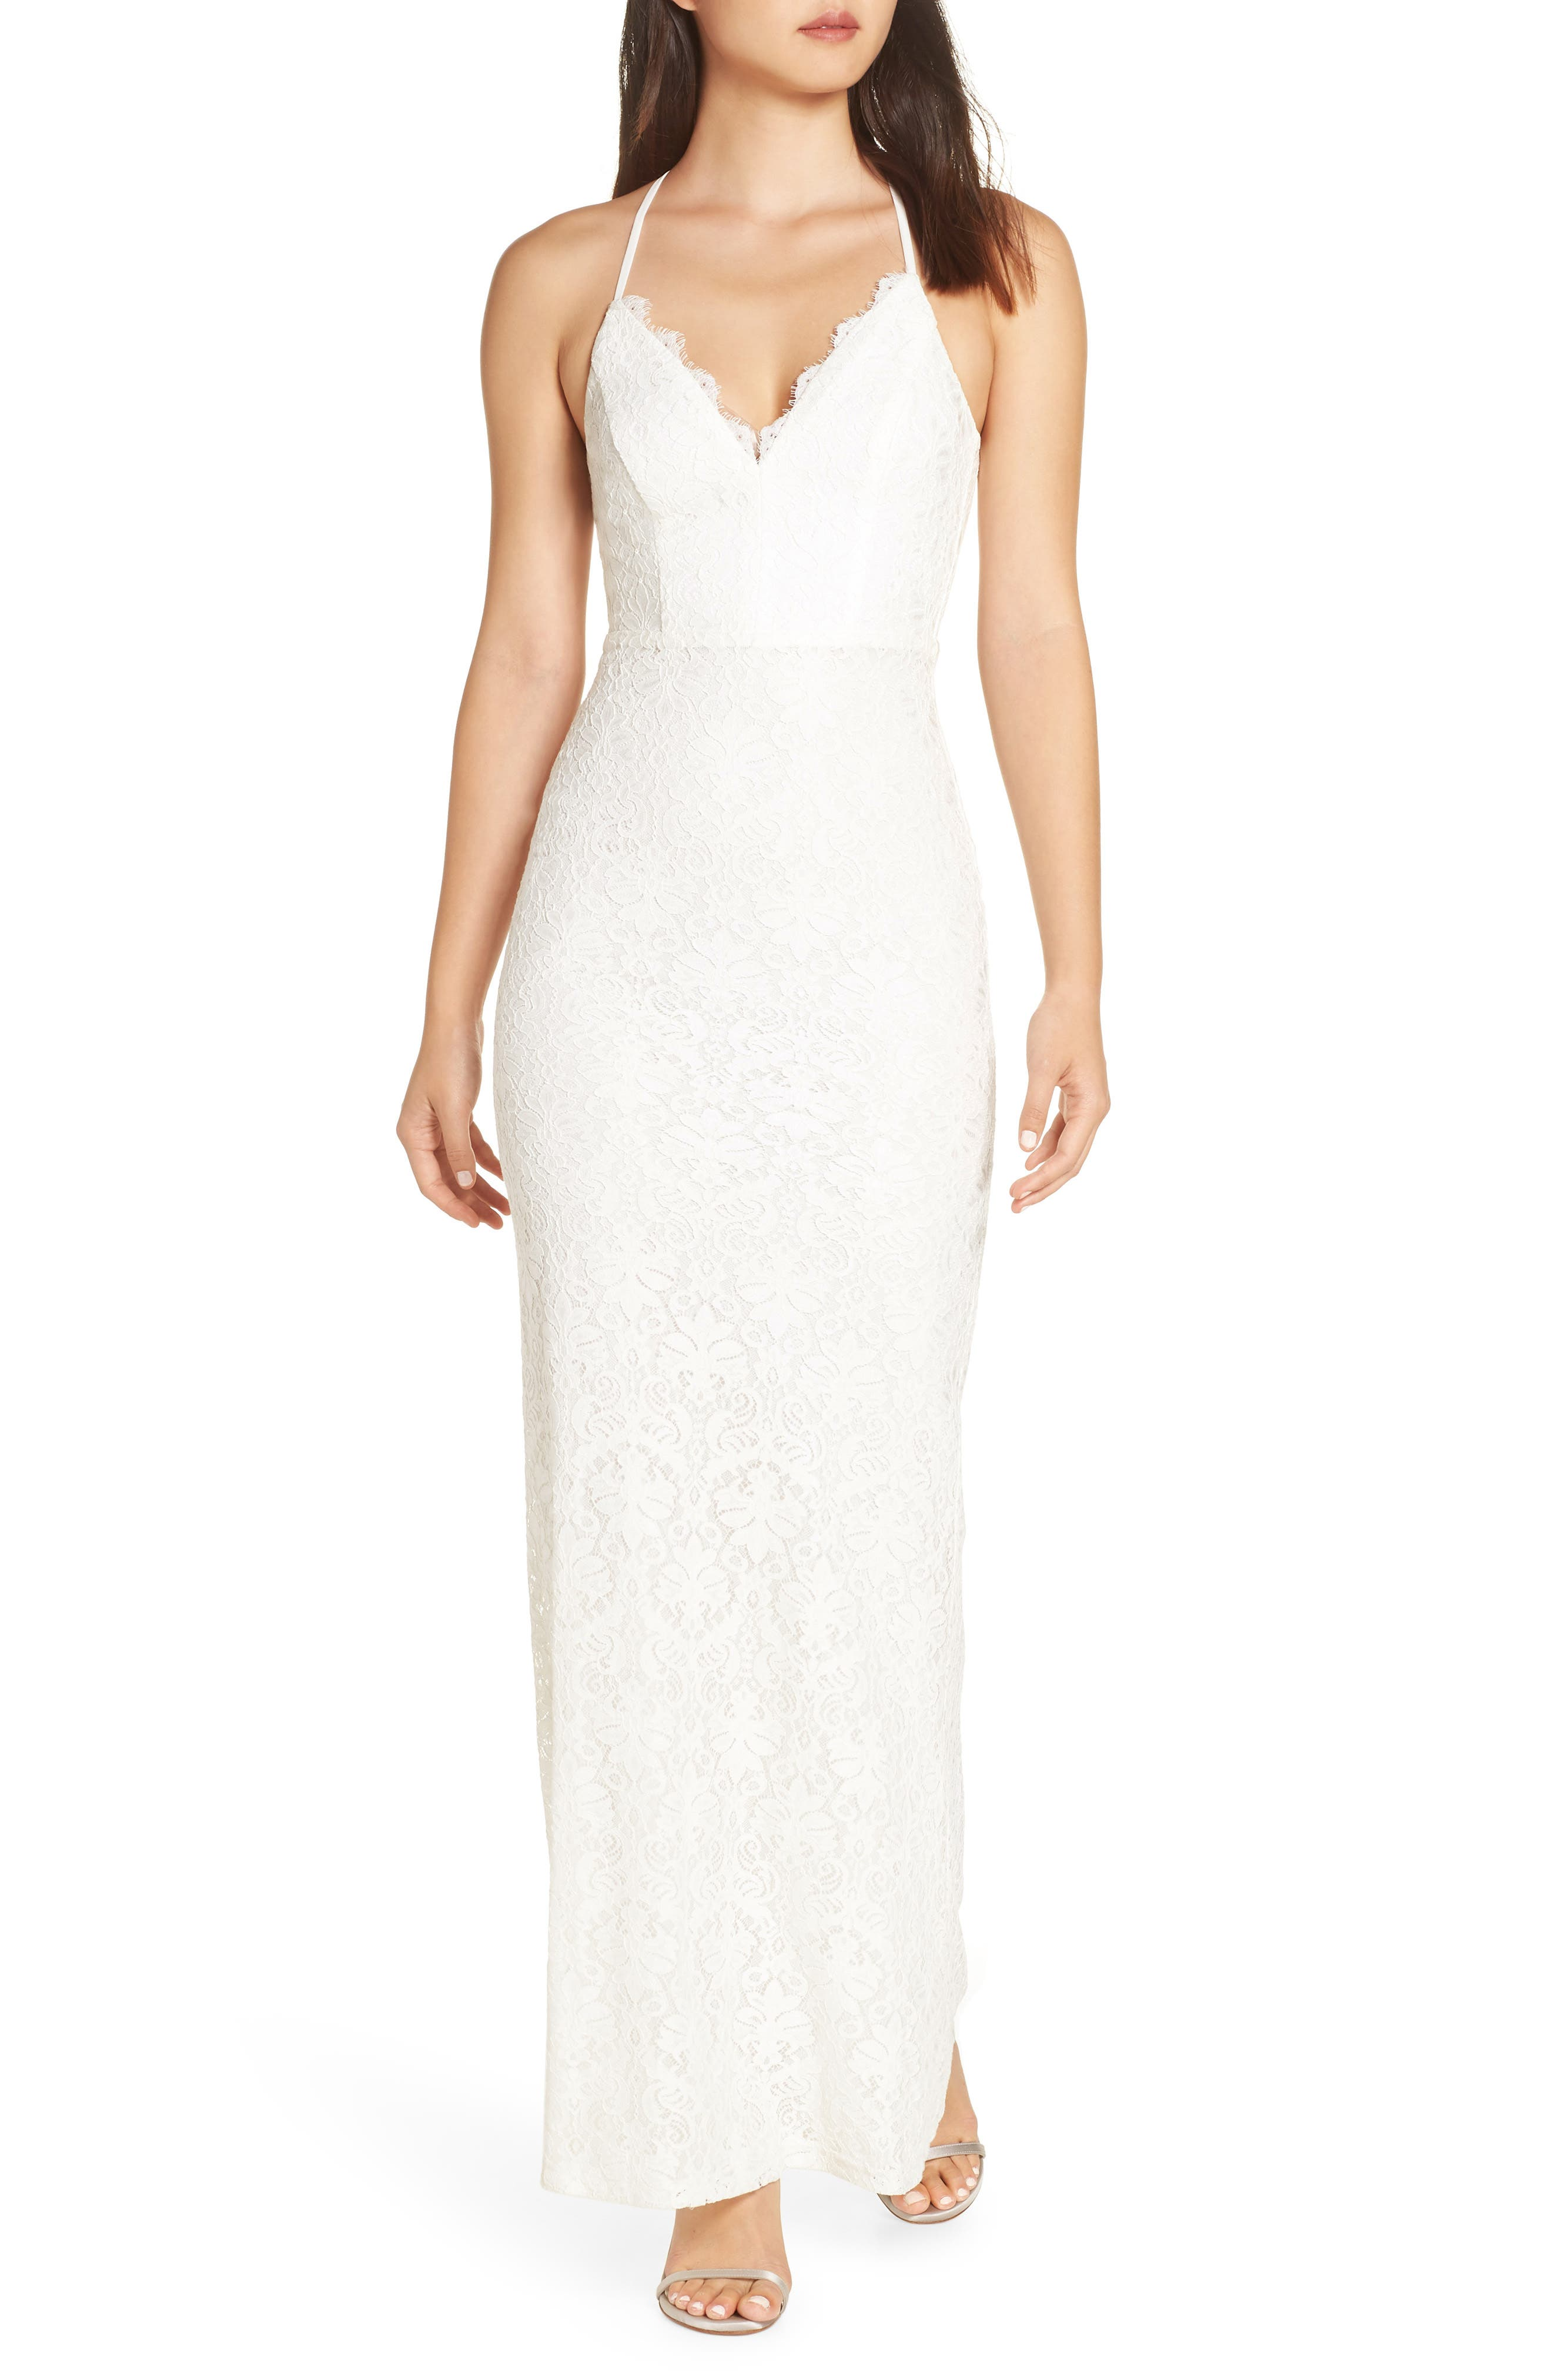 LULUS Alice Crisscross Back Gown, Main, color, WHITE/ WHITE